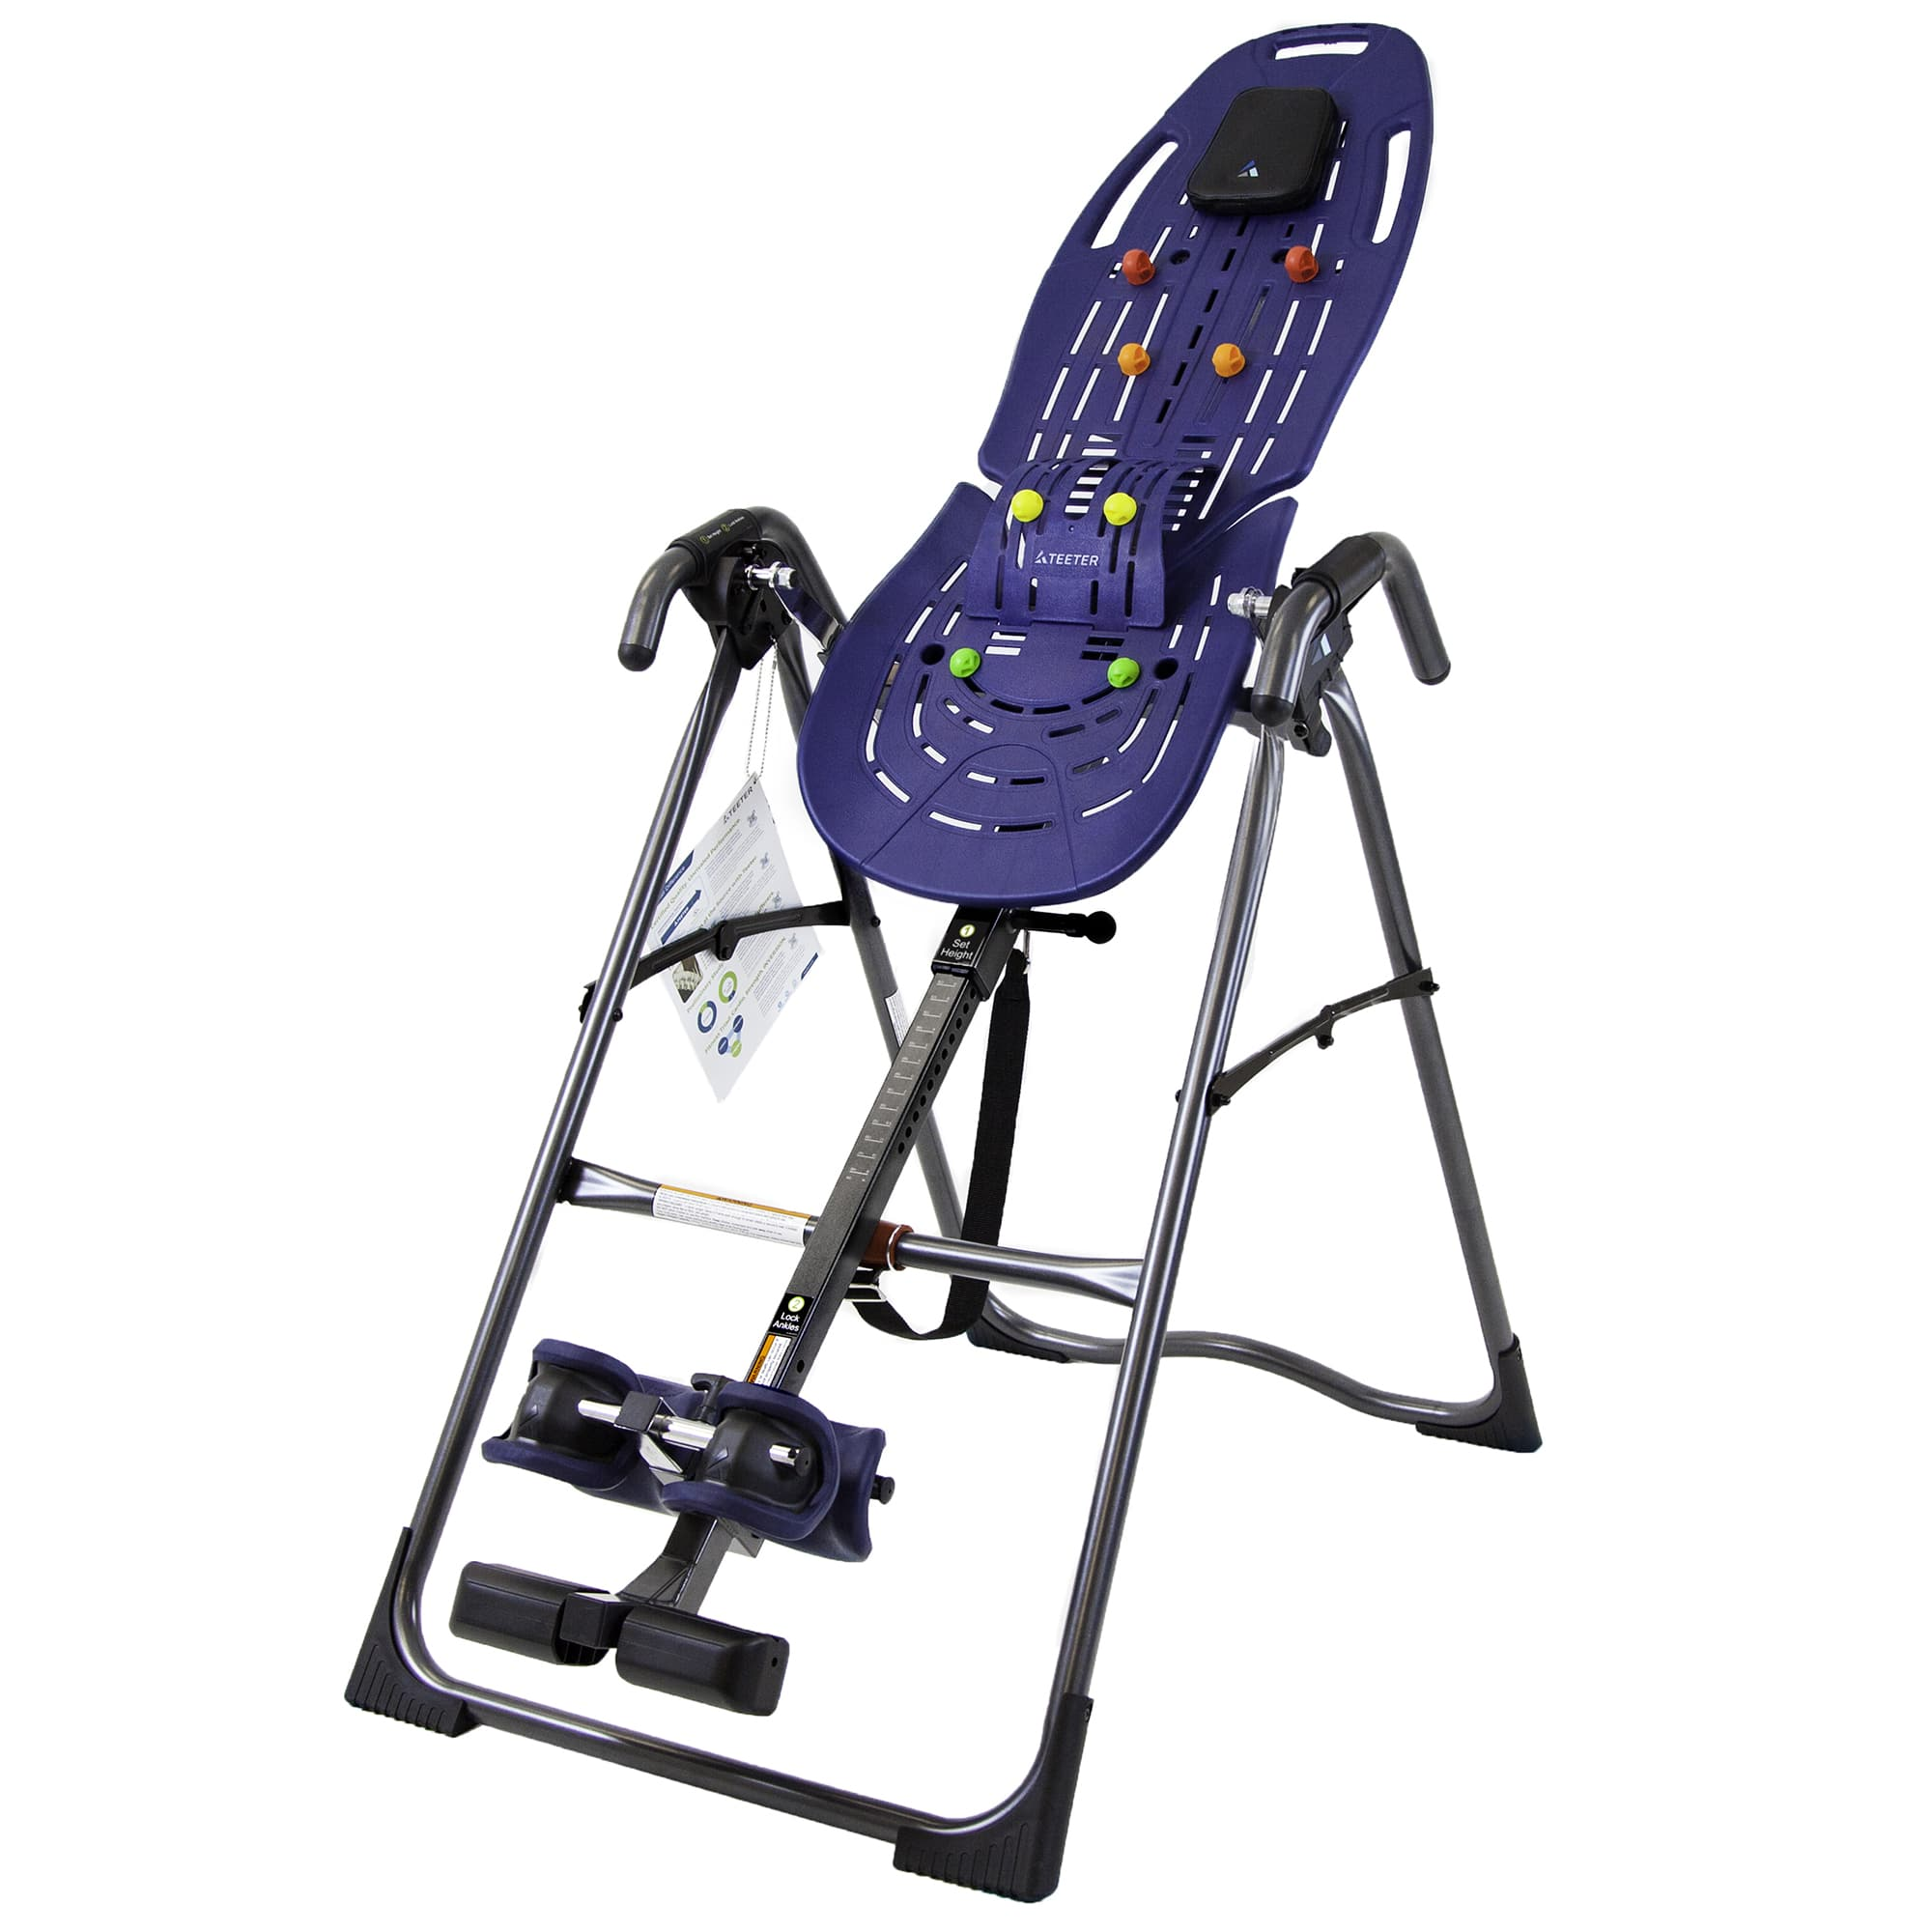 $  110 OFF TEETER EP-560 Ltd. Inversion Table with Back Pain Relief DVD $  219